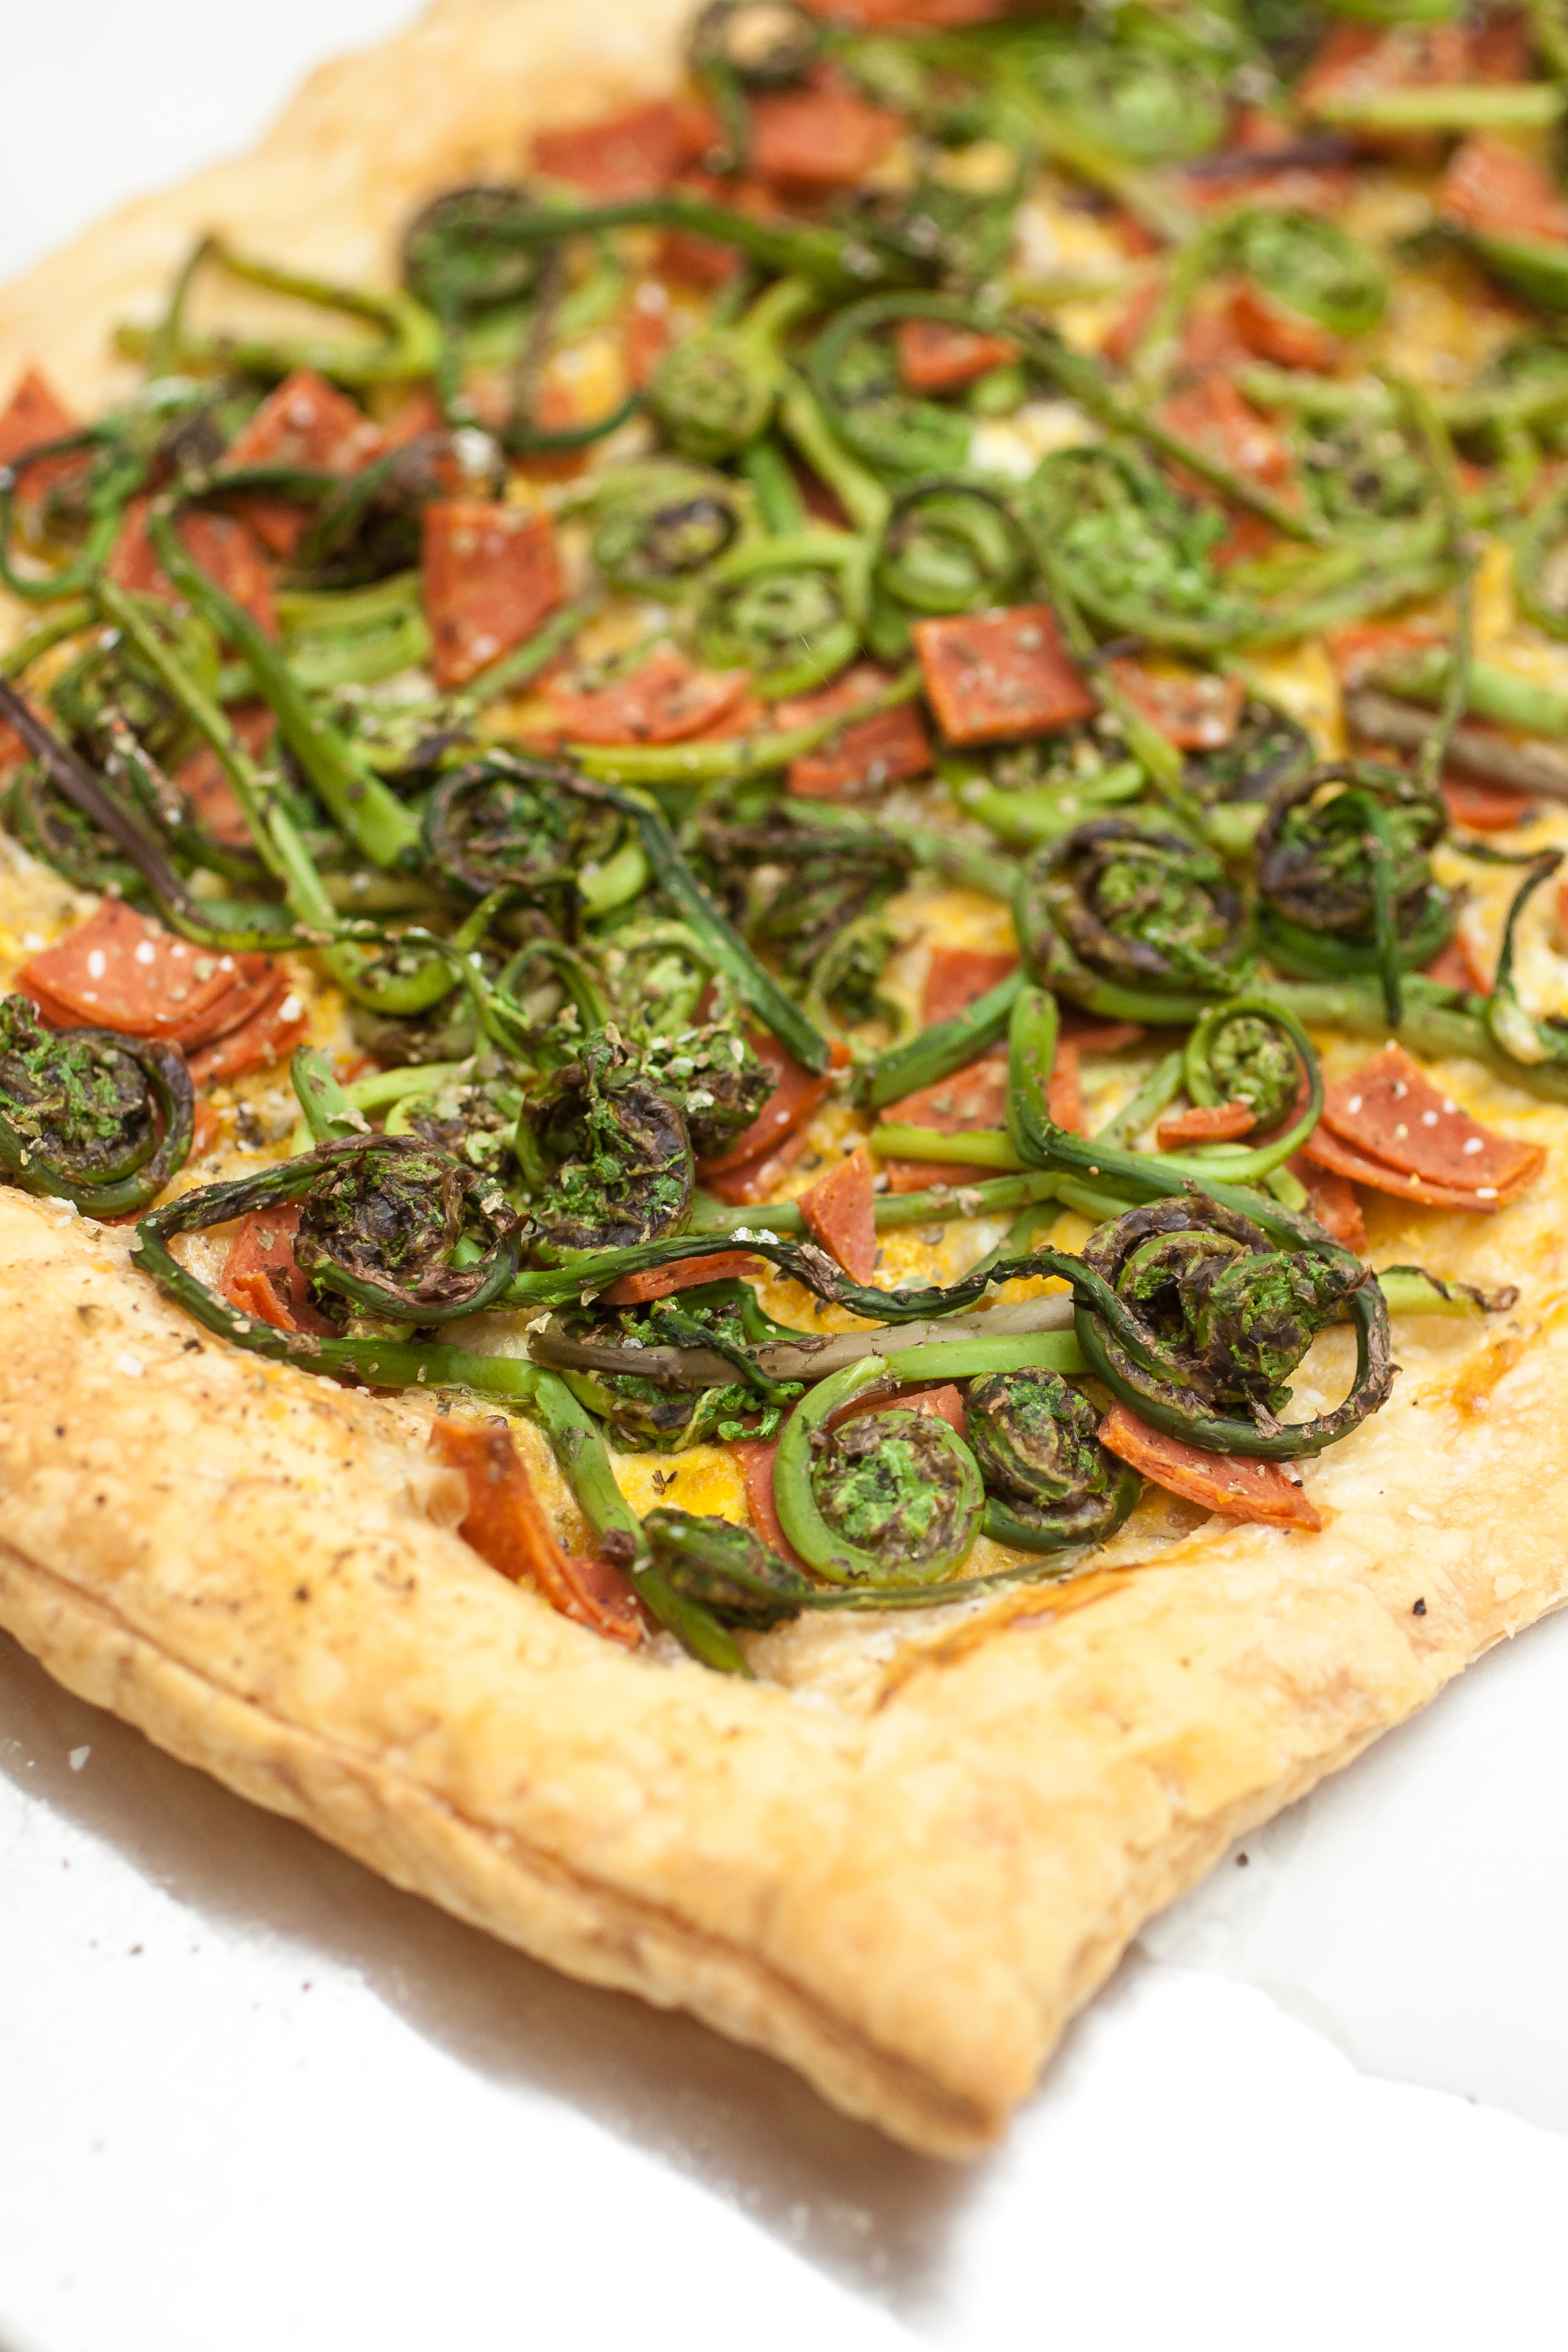 Produce On Parade - Ranch Fiddlehead & Salami Tart - Flaky puff pastry is slathered with ranch dressing and then loaded with fresh fiddlehead ferns and vegan salami. Baked to a golden-brown, this tart is perfect for a light meal or appetizer. It's sure to be a hit among those that are veg-friendly and meat-eaters as well.